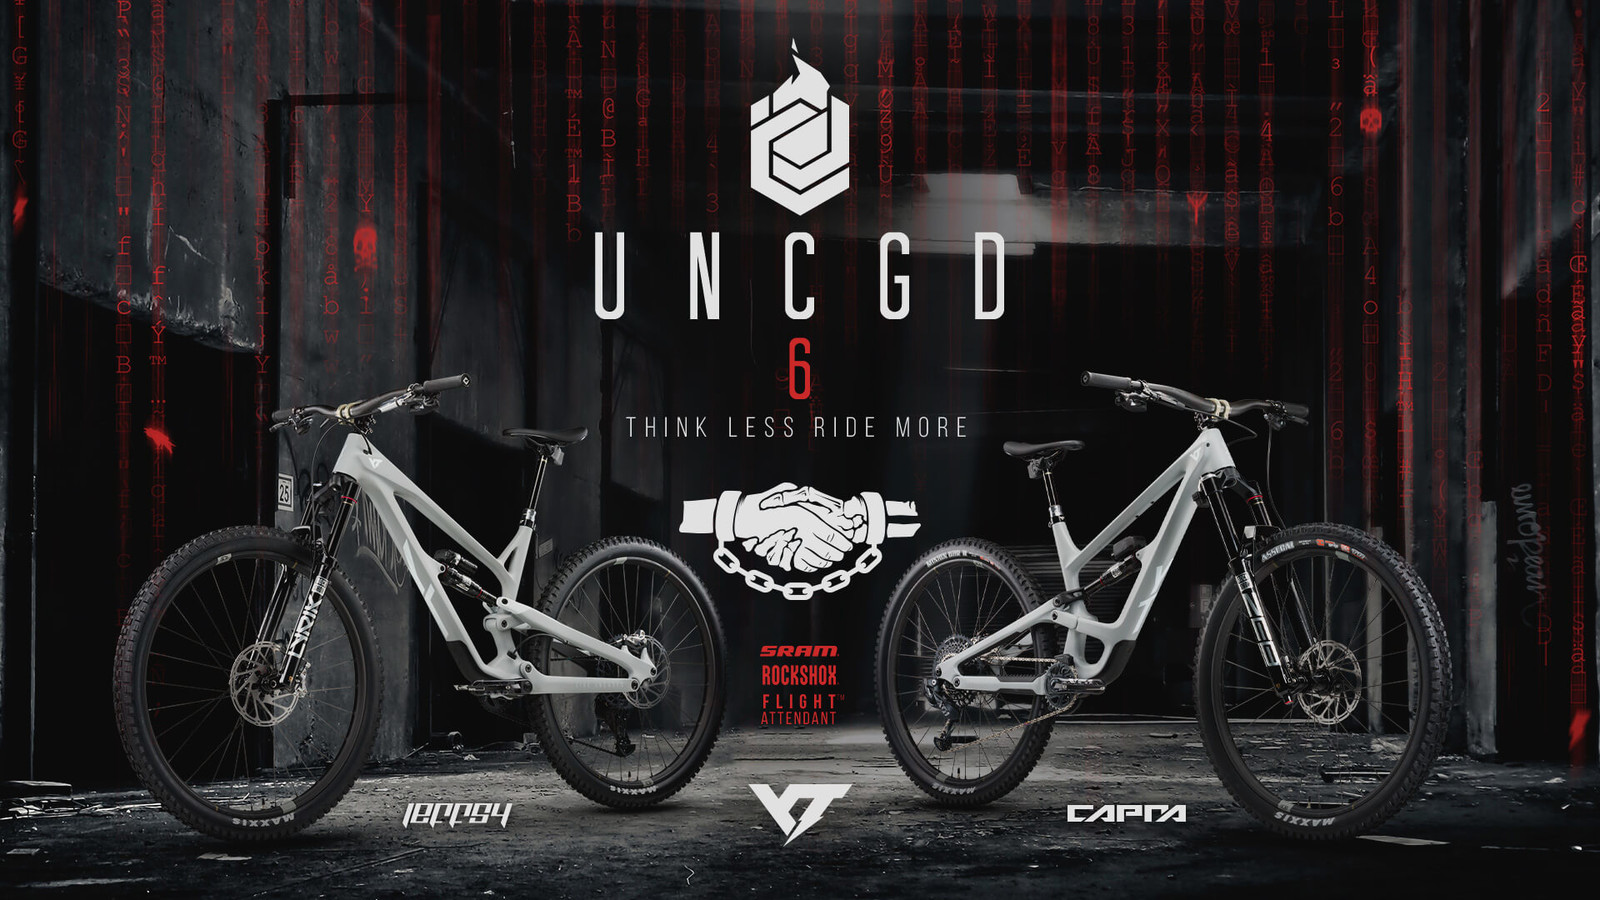 YT Introduces New Capra and Jeffsy Uncaged Models with RockShox Flight Attendant Technology